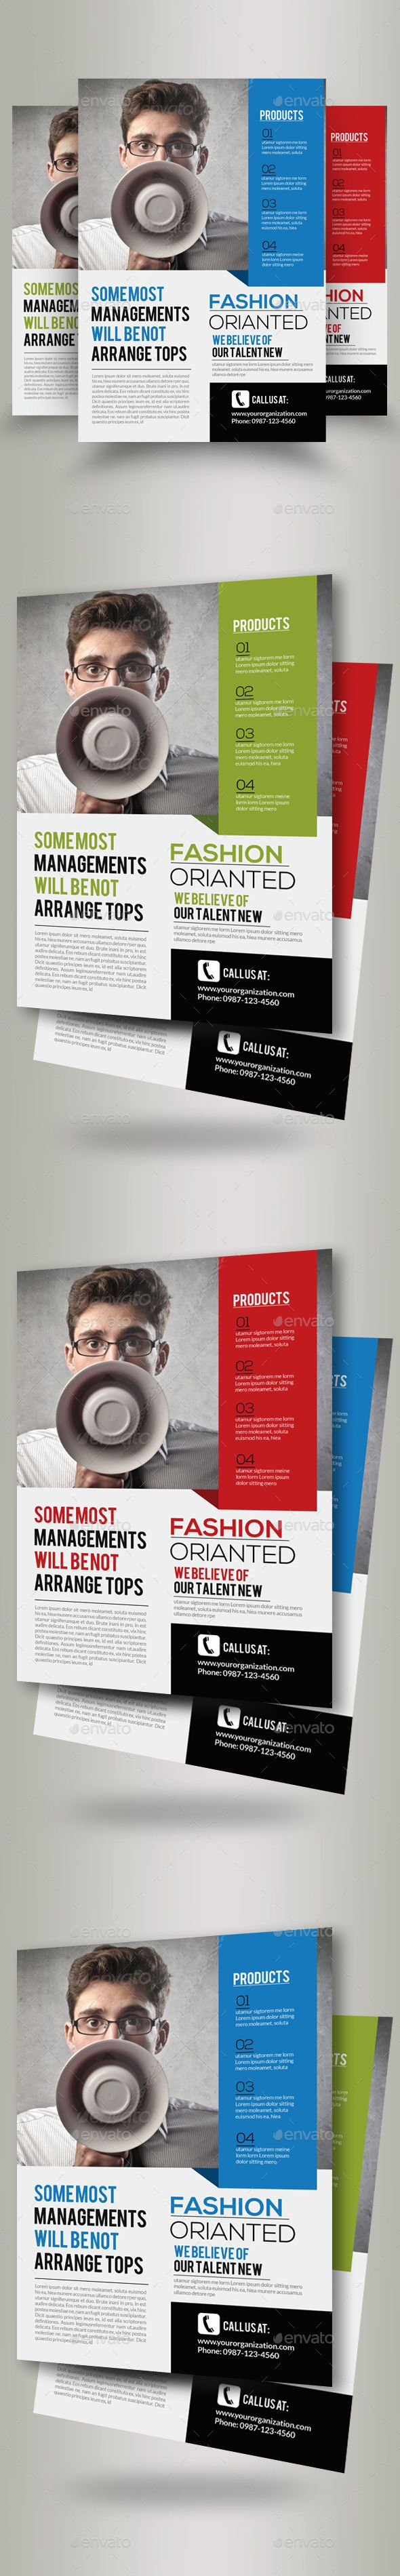 Business Marketing Consultant Flyer Template PSD